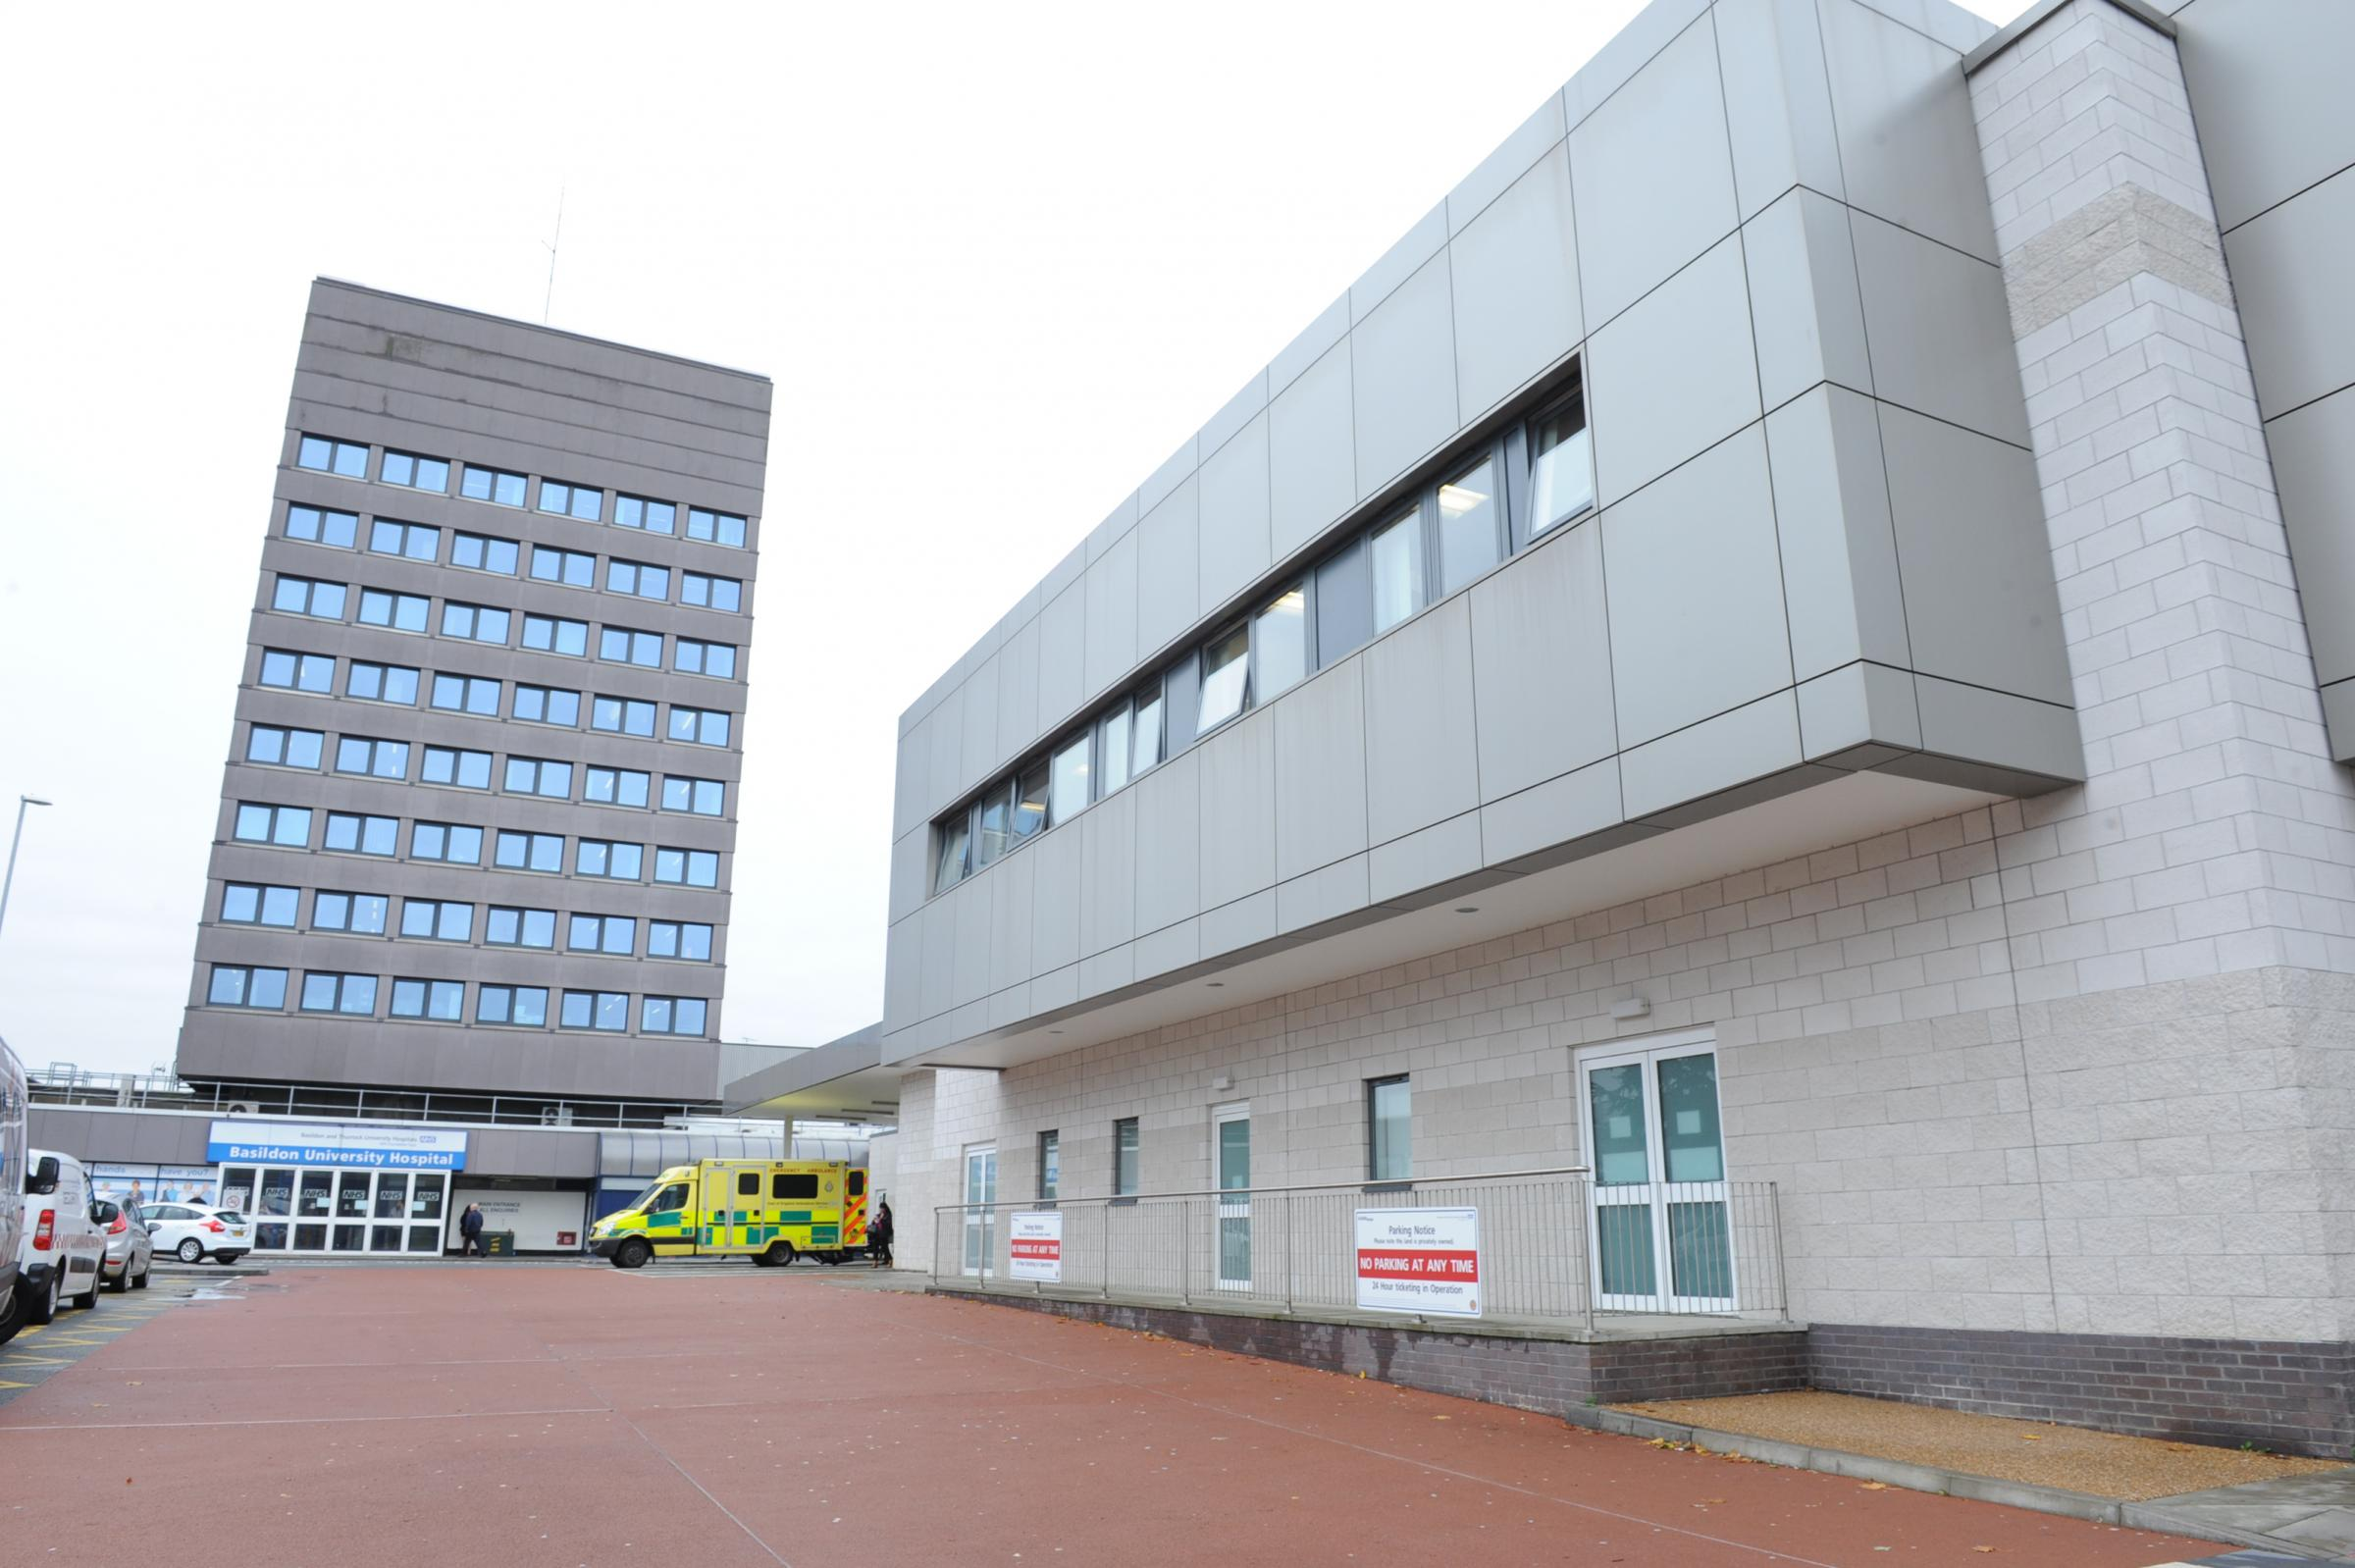 Have your say on Basildon Hospital